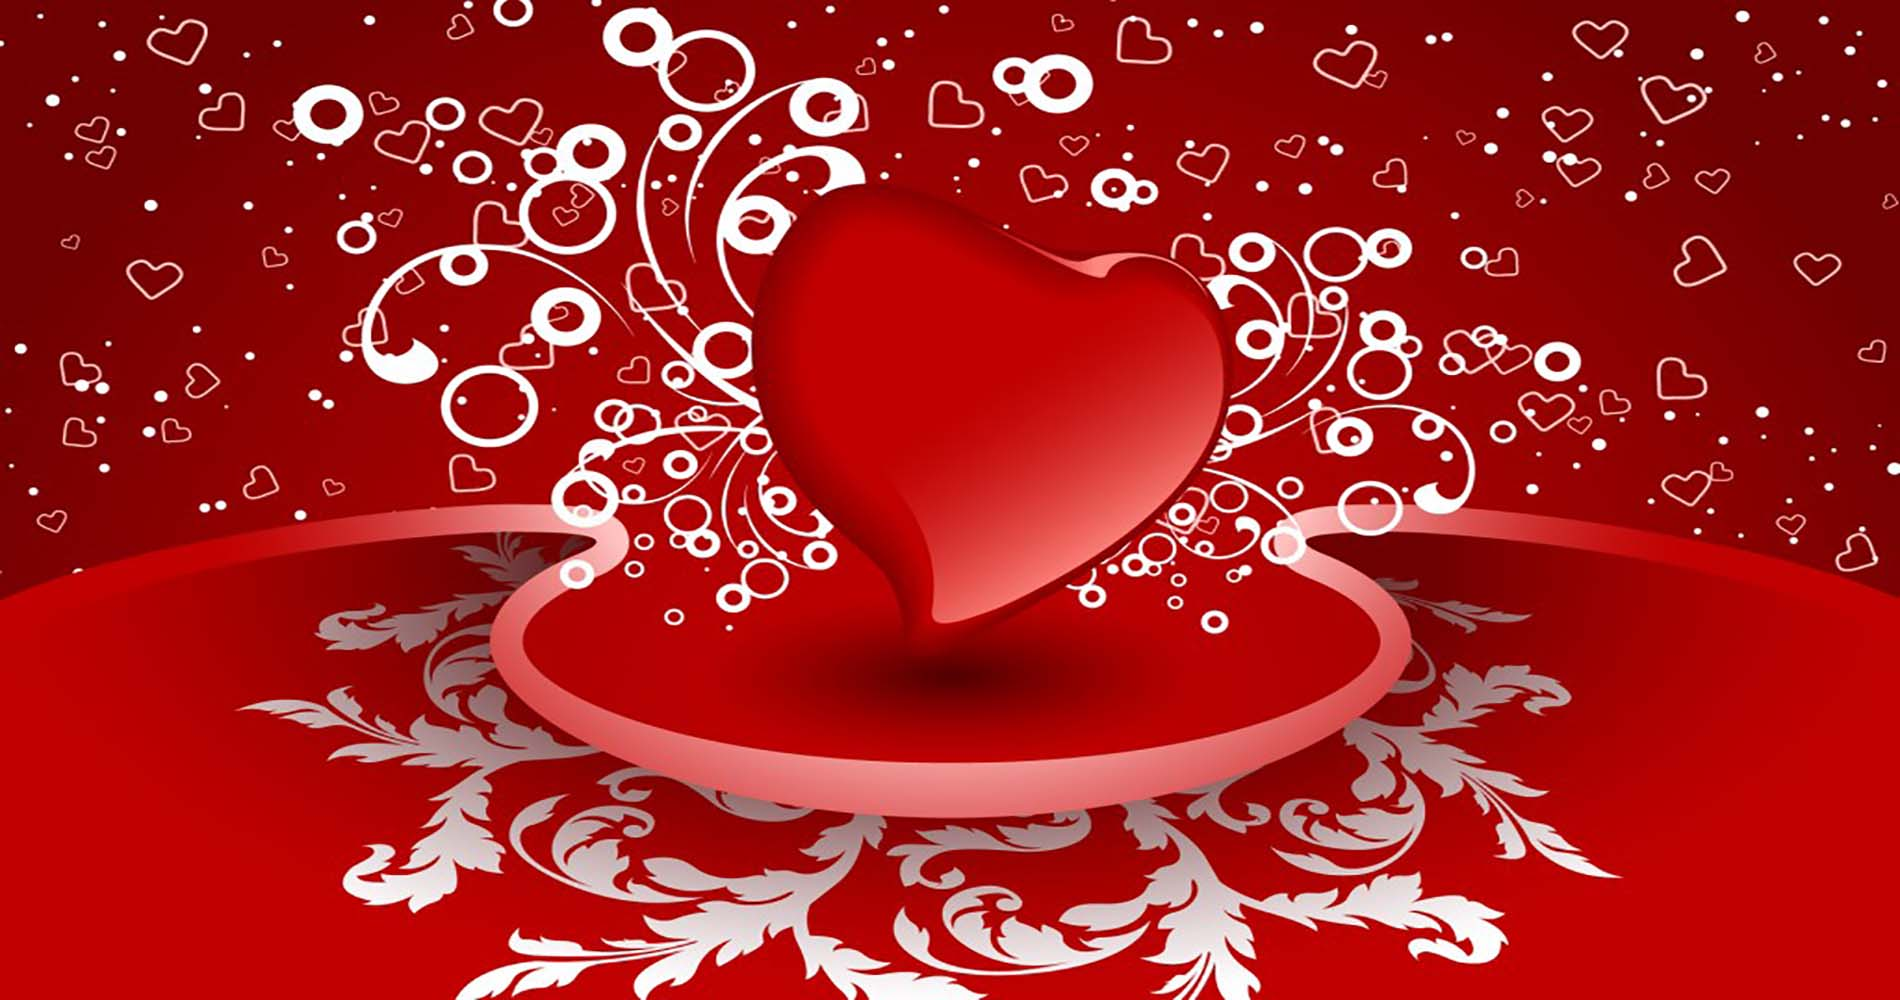 Wallpapers Of Beautiful Hearts